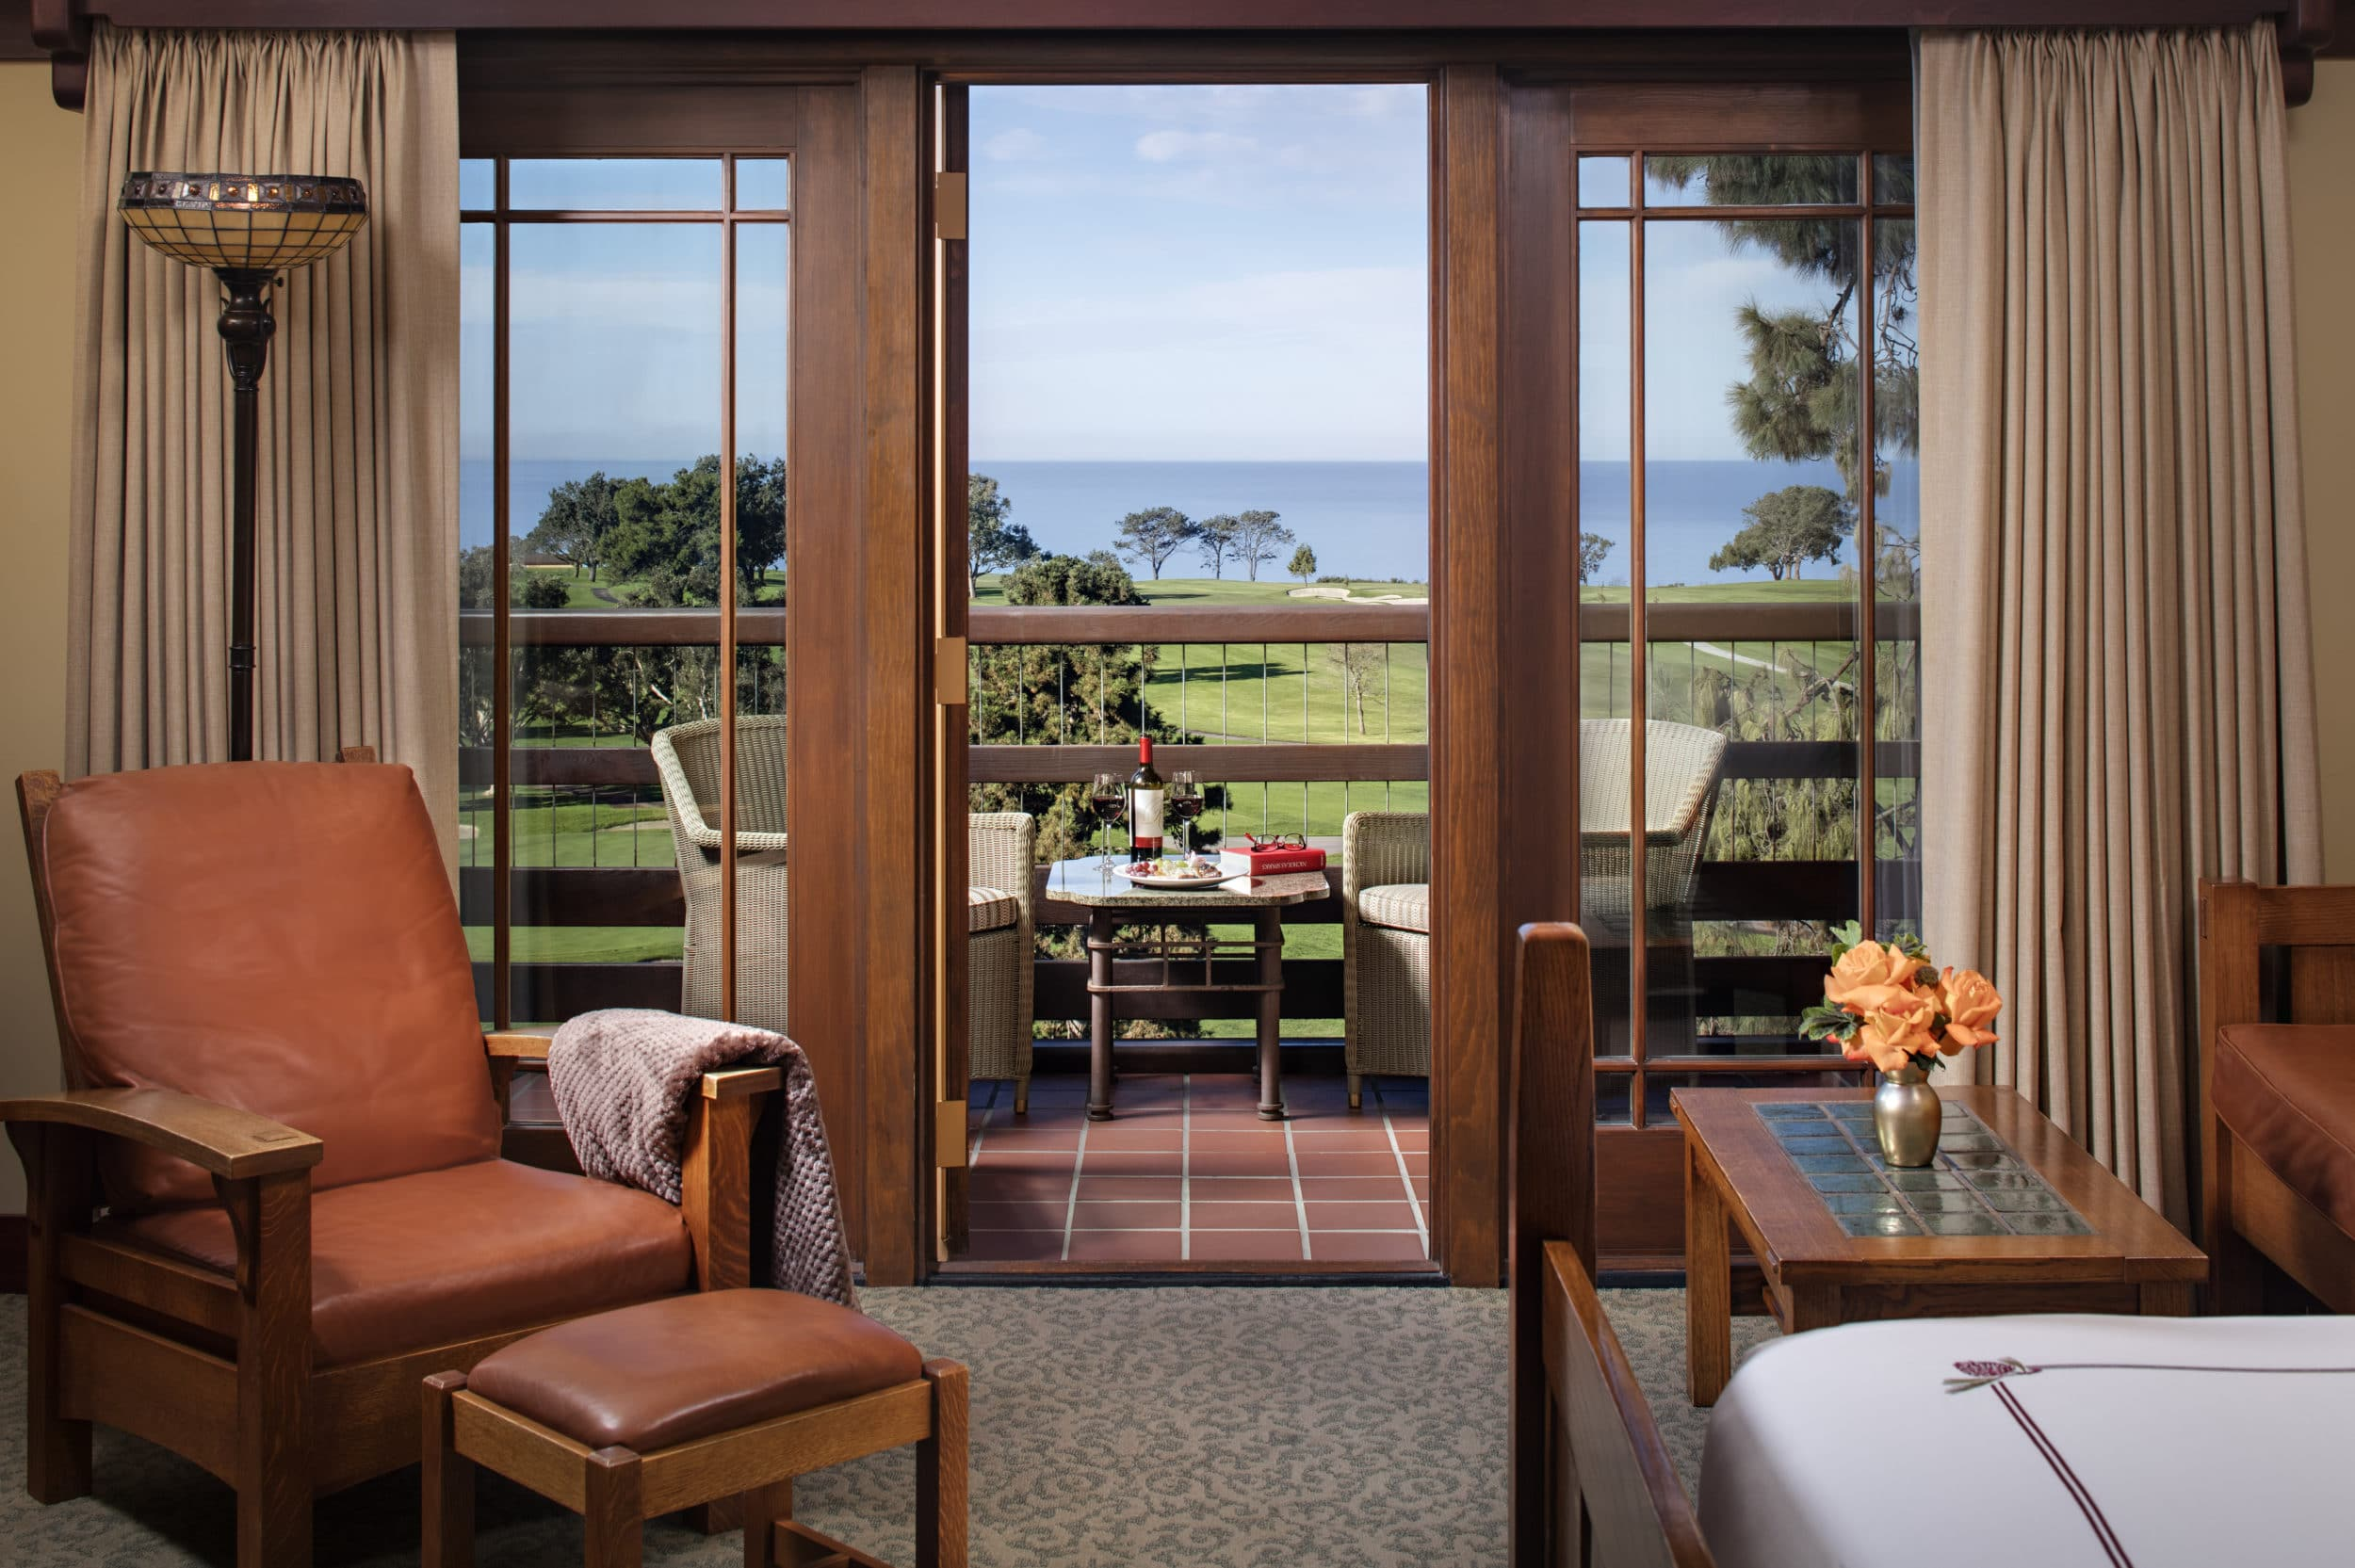 Palisade Room with ocean views at The Lodge at Torrey Pines